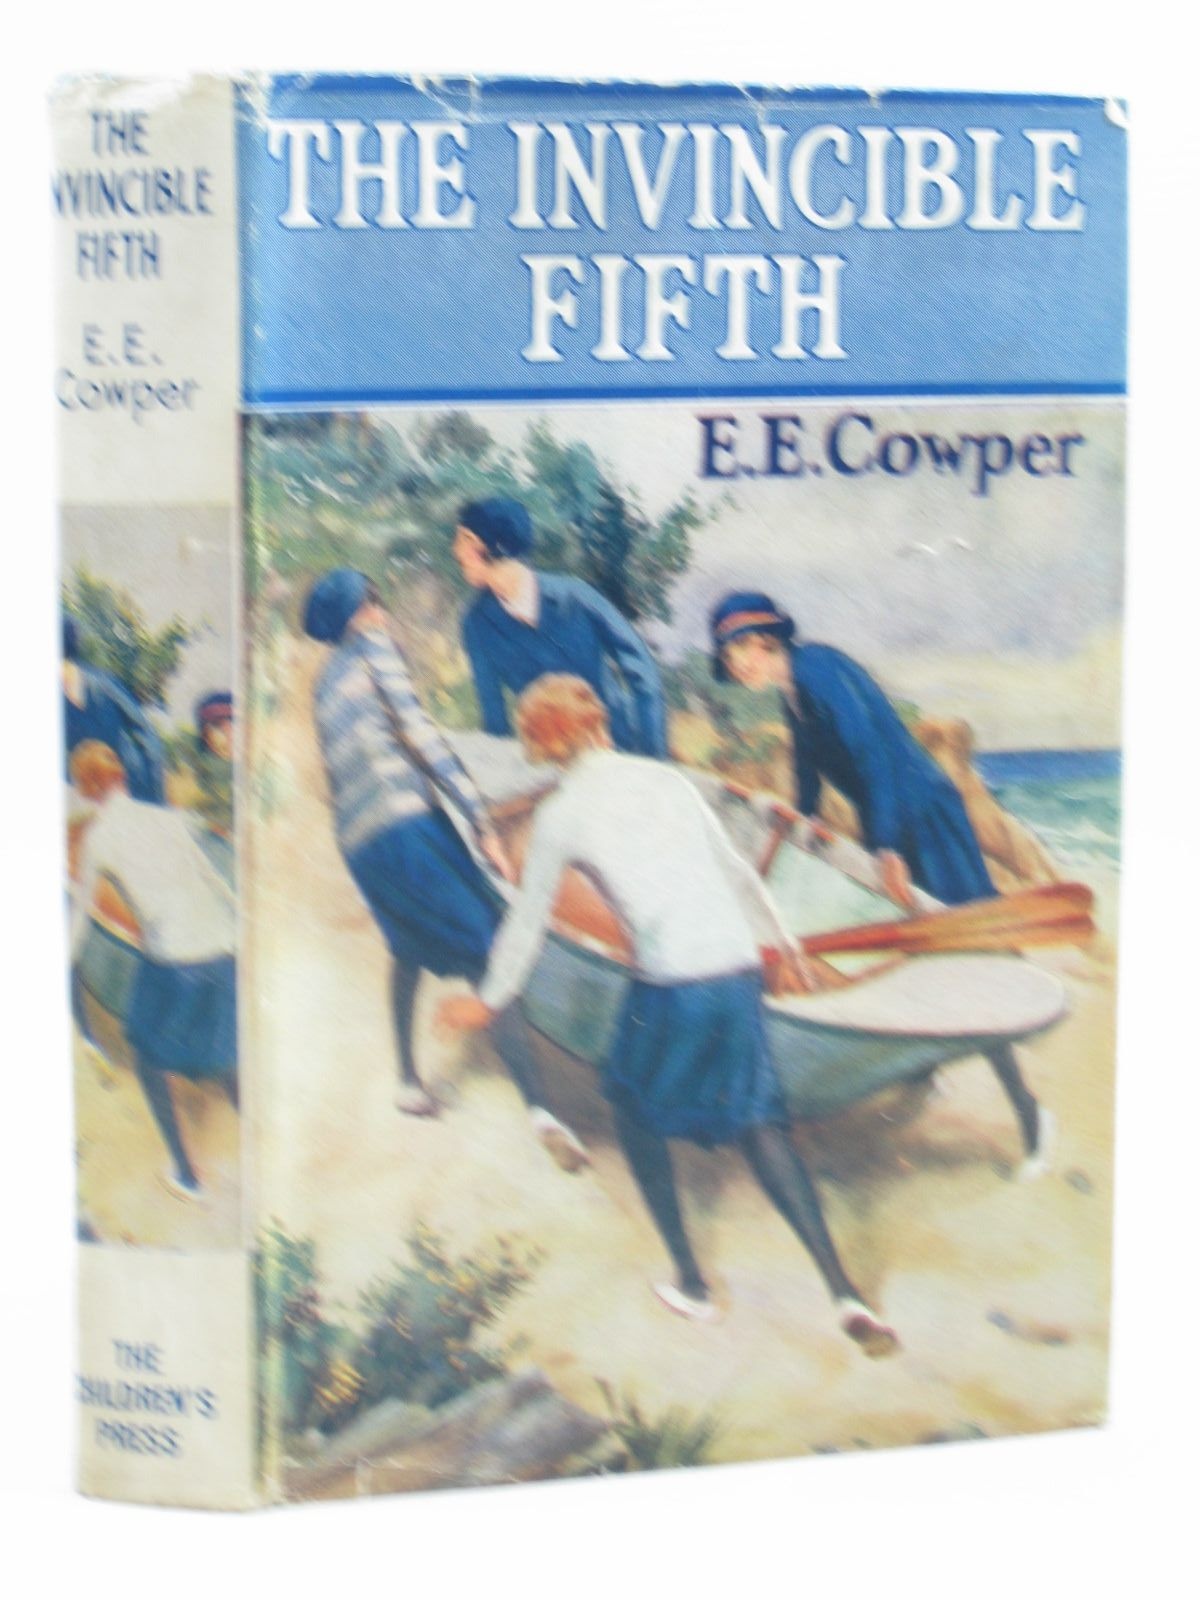 Photo of THE INVINCIBLE FIFTH written by Cowper, E.E. illustrated by Hickling, P.B. published by The Children's Press (STOCK CODE: 1403731)  for sale by Stella & Rose's Books